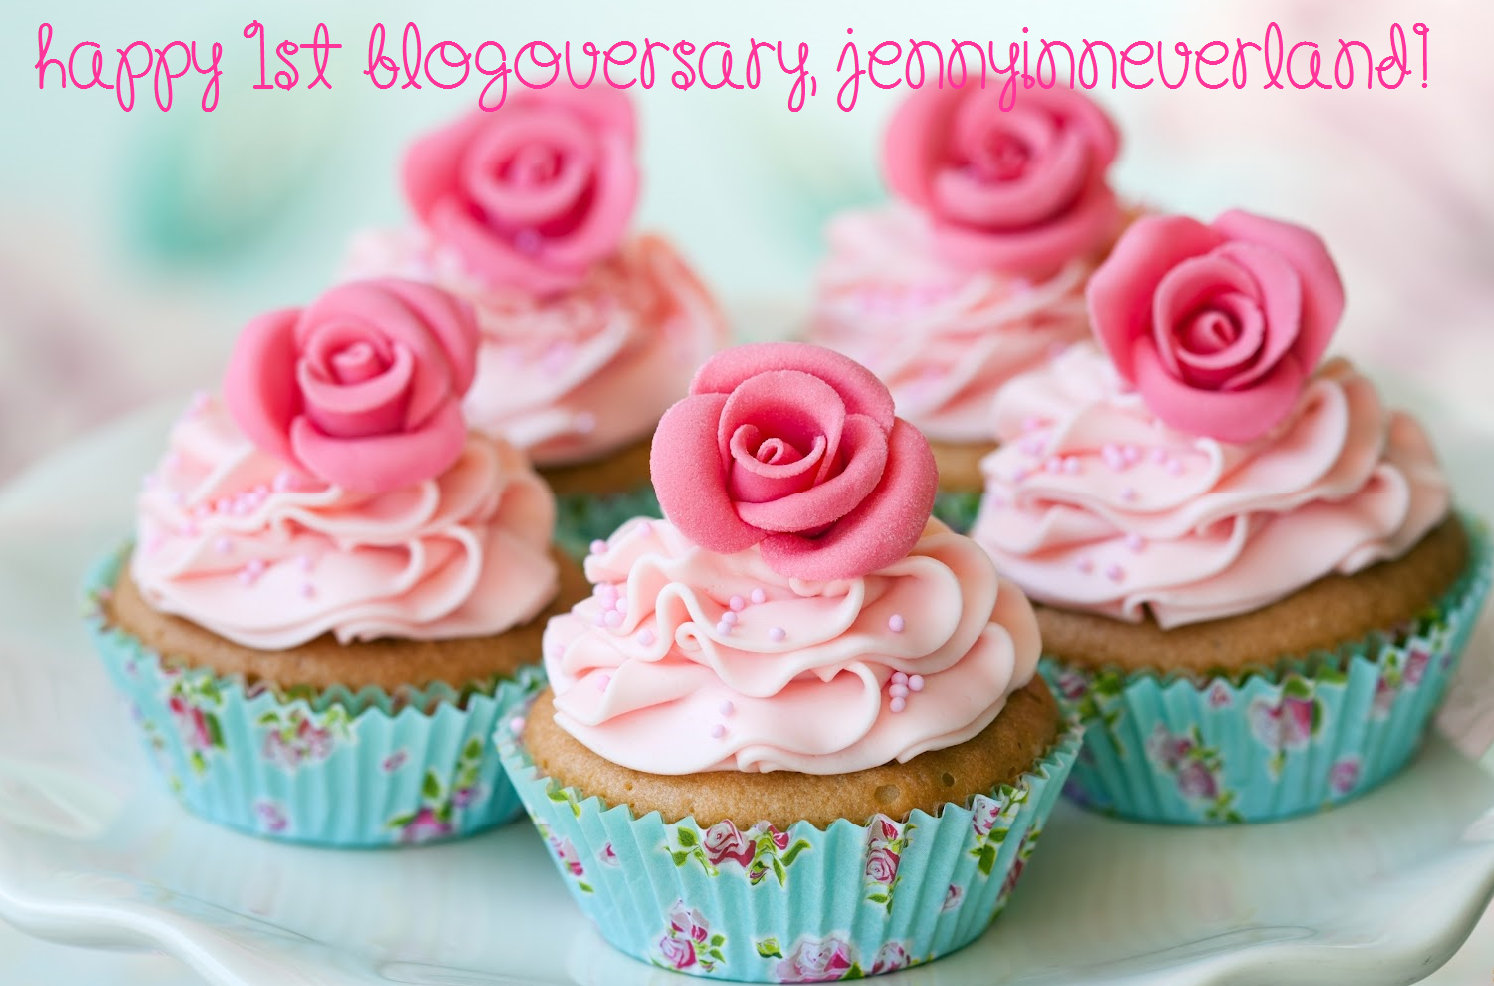 My Blog Is One Years Old! Blogging Friends, This One's For You...